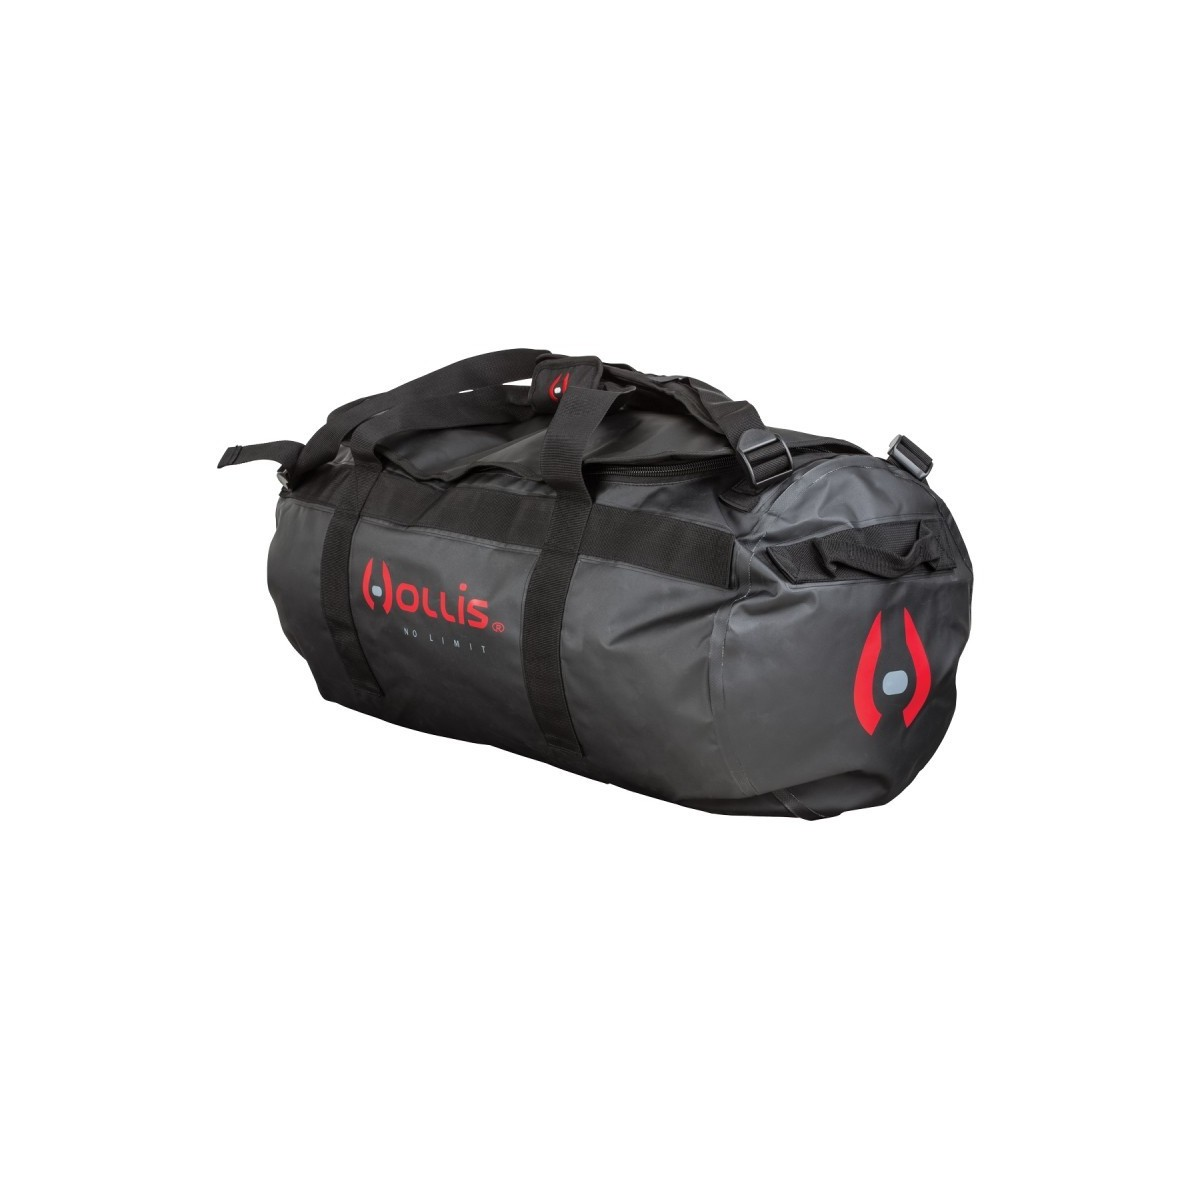 Hollis Duffel Bag